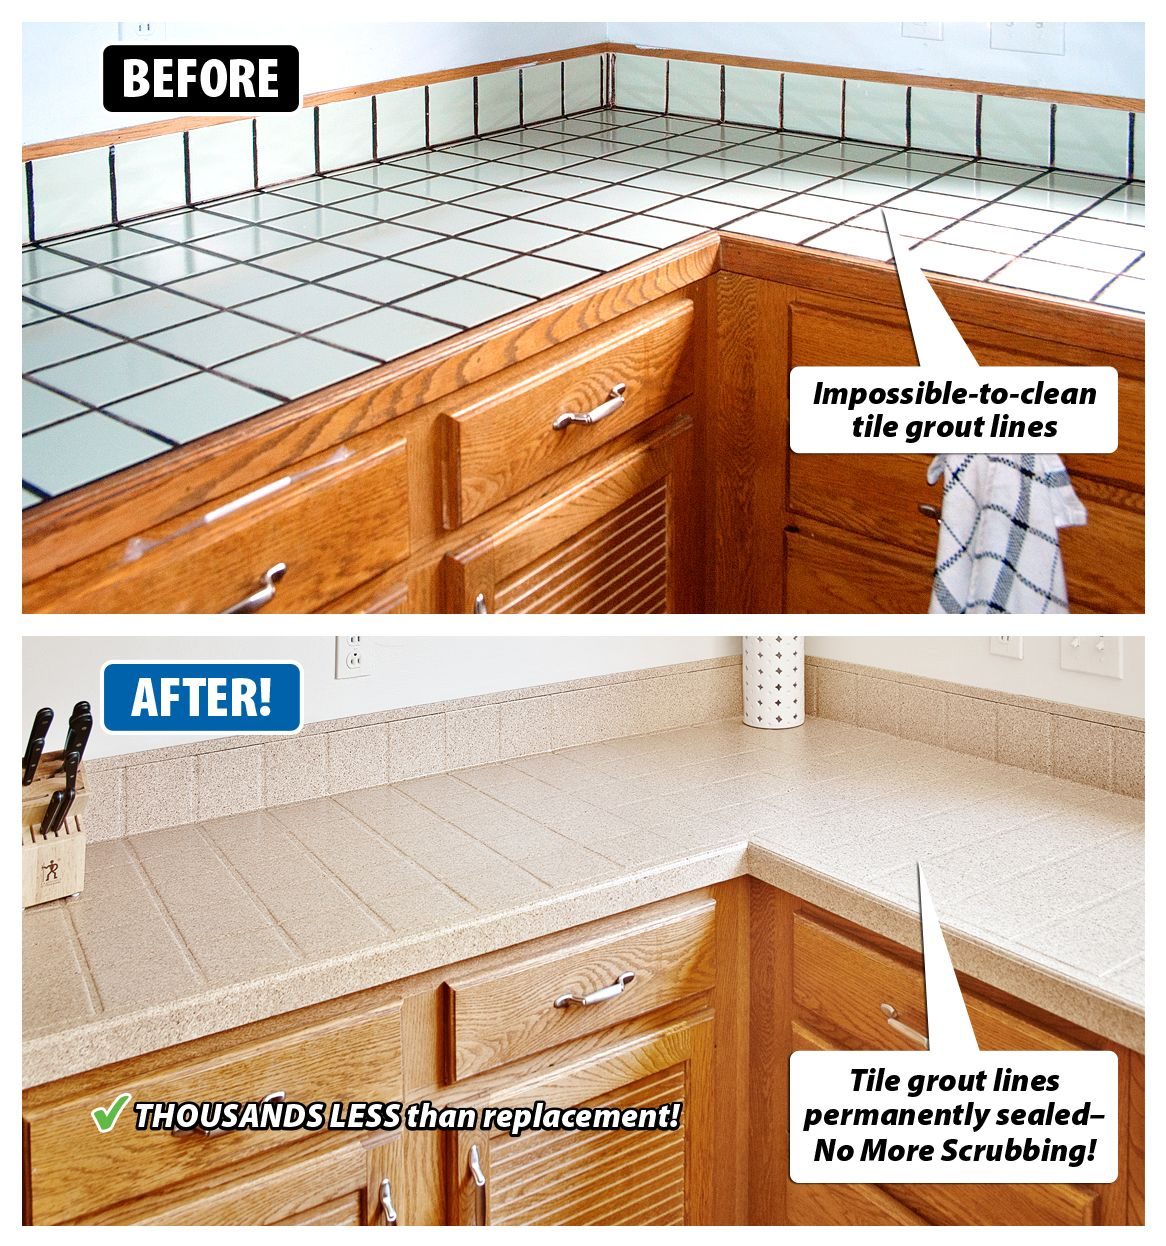 Gentil Are Your Tile Countertops Dated And Worn? Grout Hard To Clean? Do You Like  The Shape Of Your Tile, But Want An Updated Design? Miracle Method Can  Refinish ...